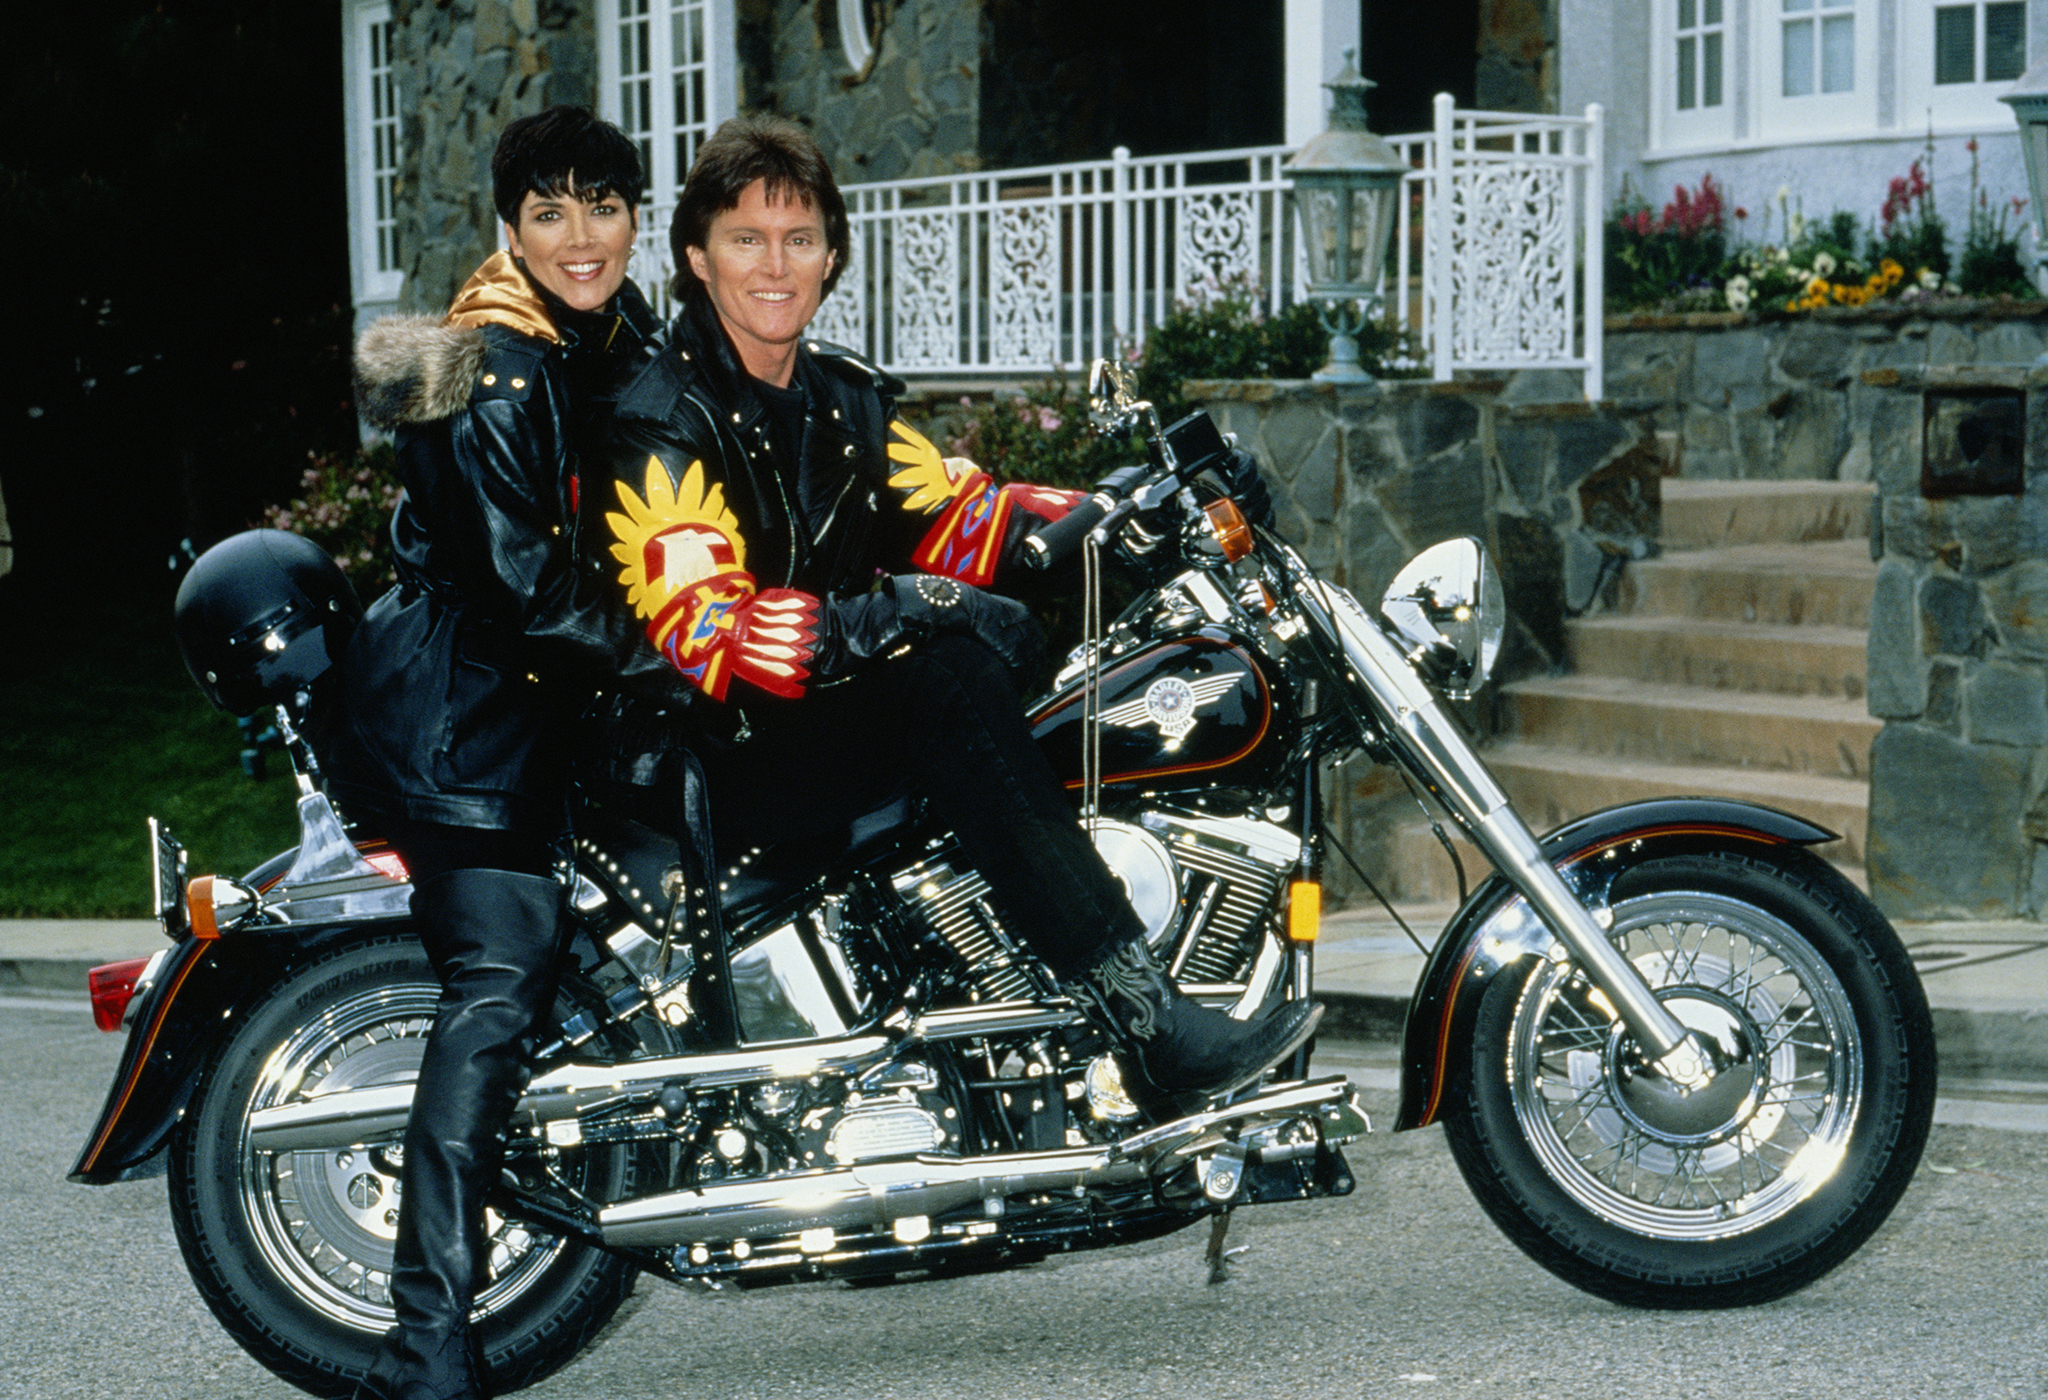 The Jenners are revved up in 1991. (Maureen Donaldson/Getty Images )